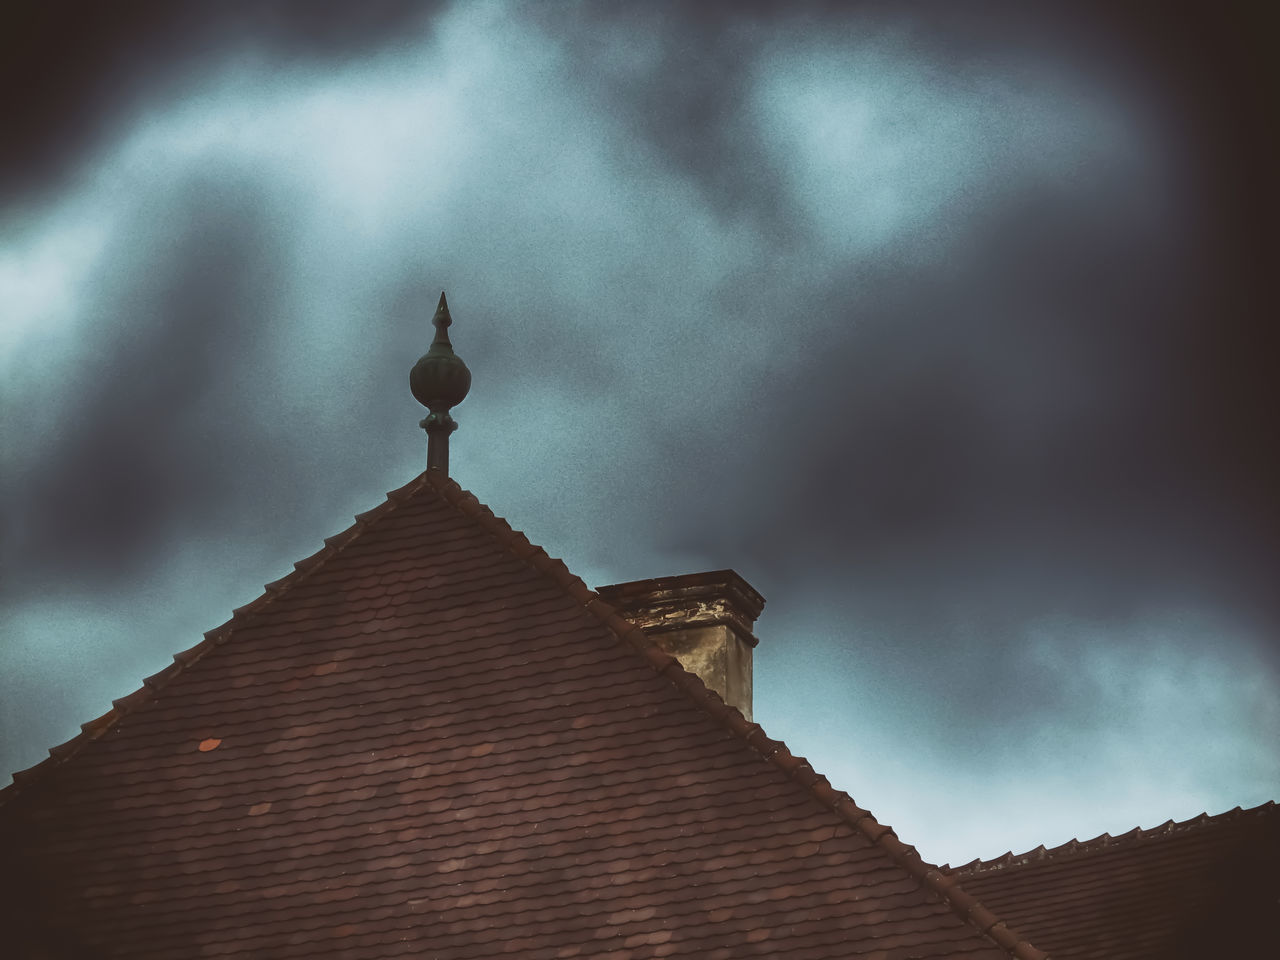 architecture, building exterior, built structure, cloud - sky, building, sky, religion, spirituality, low angle view, belief, roof, place of worship, no people, nature, day, outdoors, the past, spire, roof tile